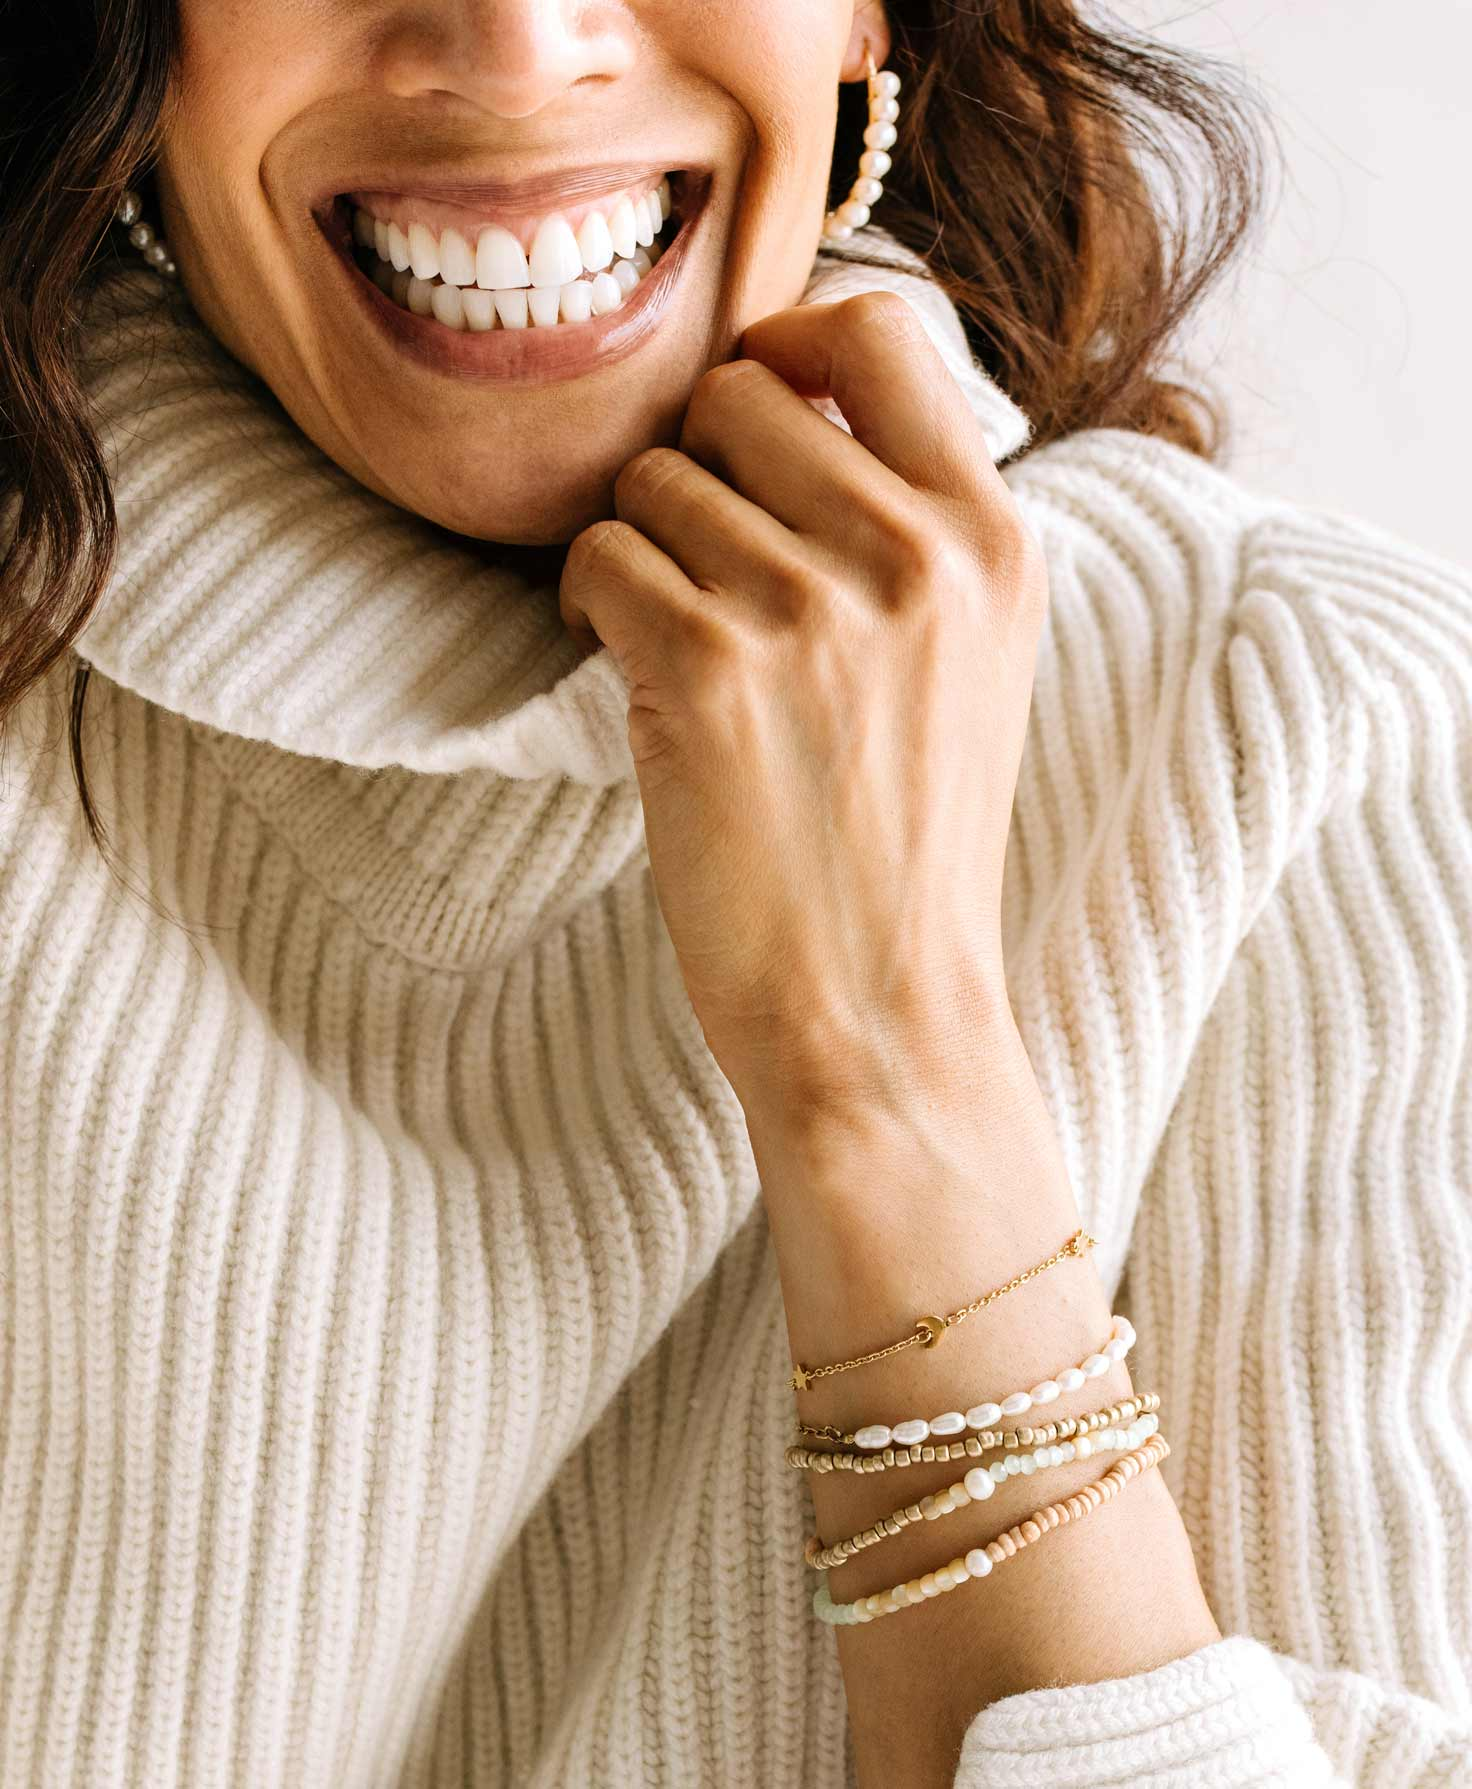 A model wears the Splendid Bracelet layered with a stack of other bracelets featuring gold metal and a soft color palette. She finishes her look with the gold and pearl League Earrings.